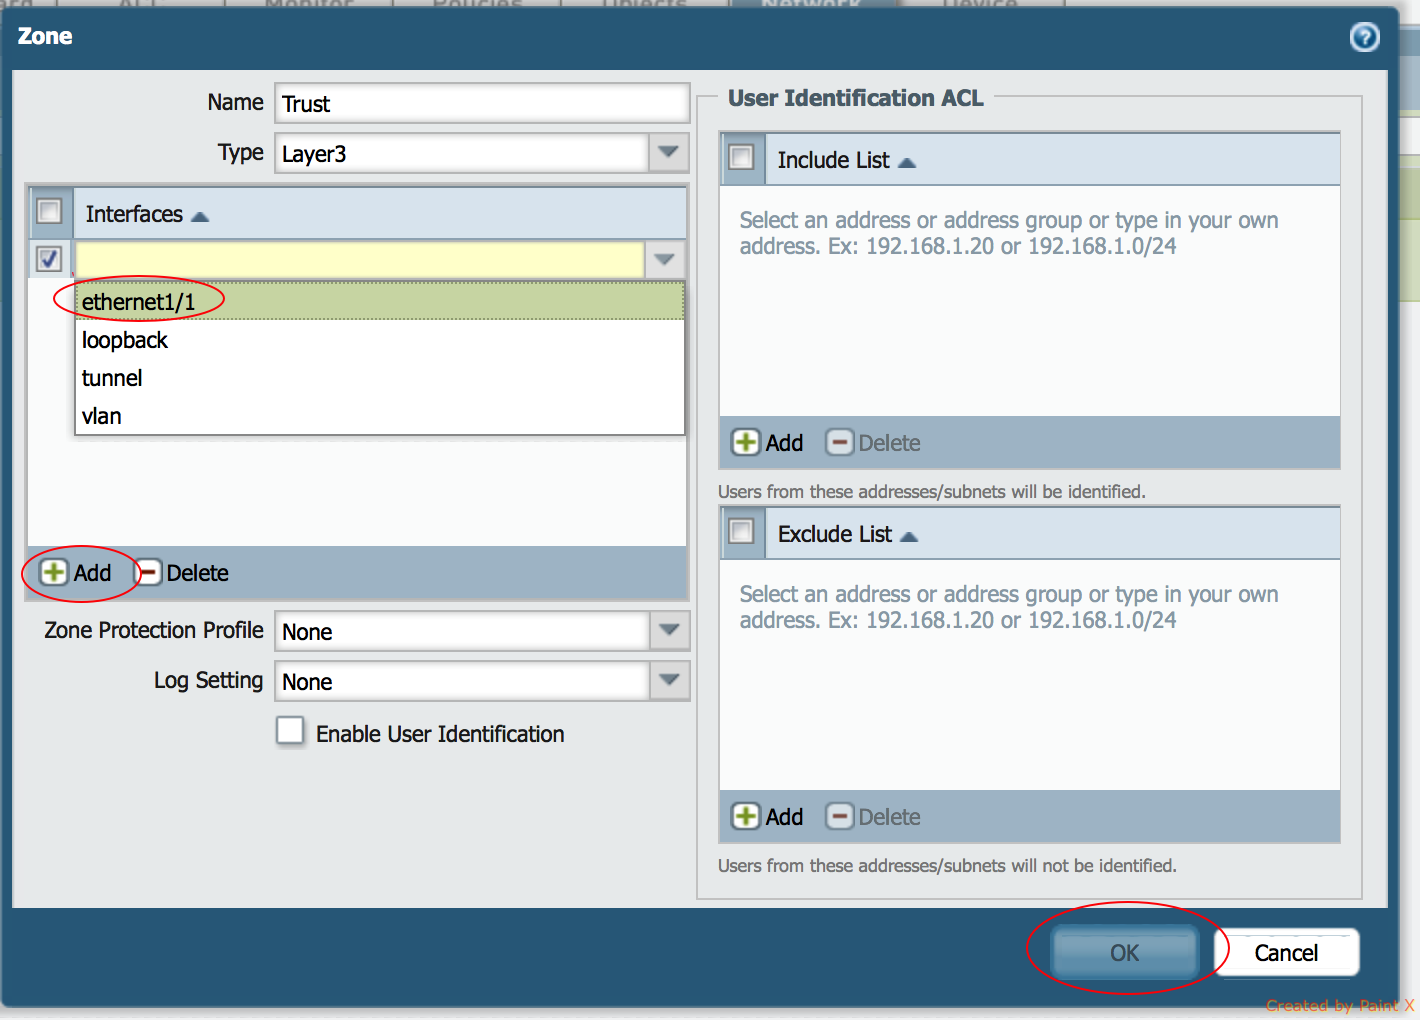 How to configure a Layer 3 zone in Palo Alto Networks